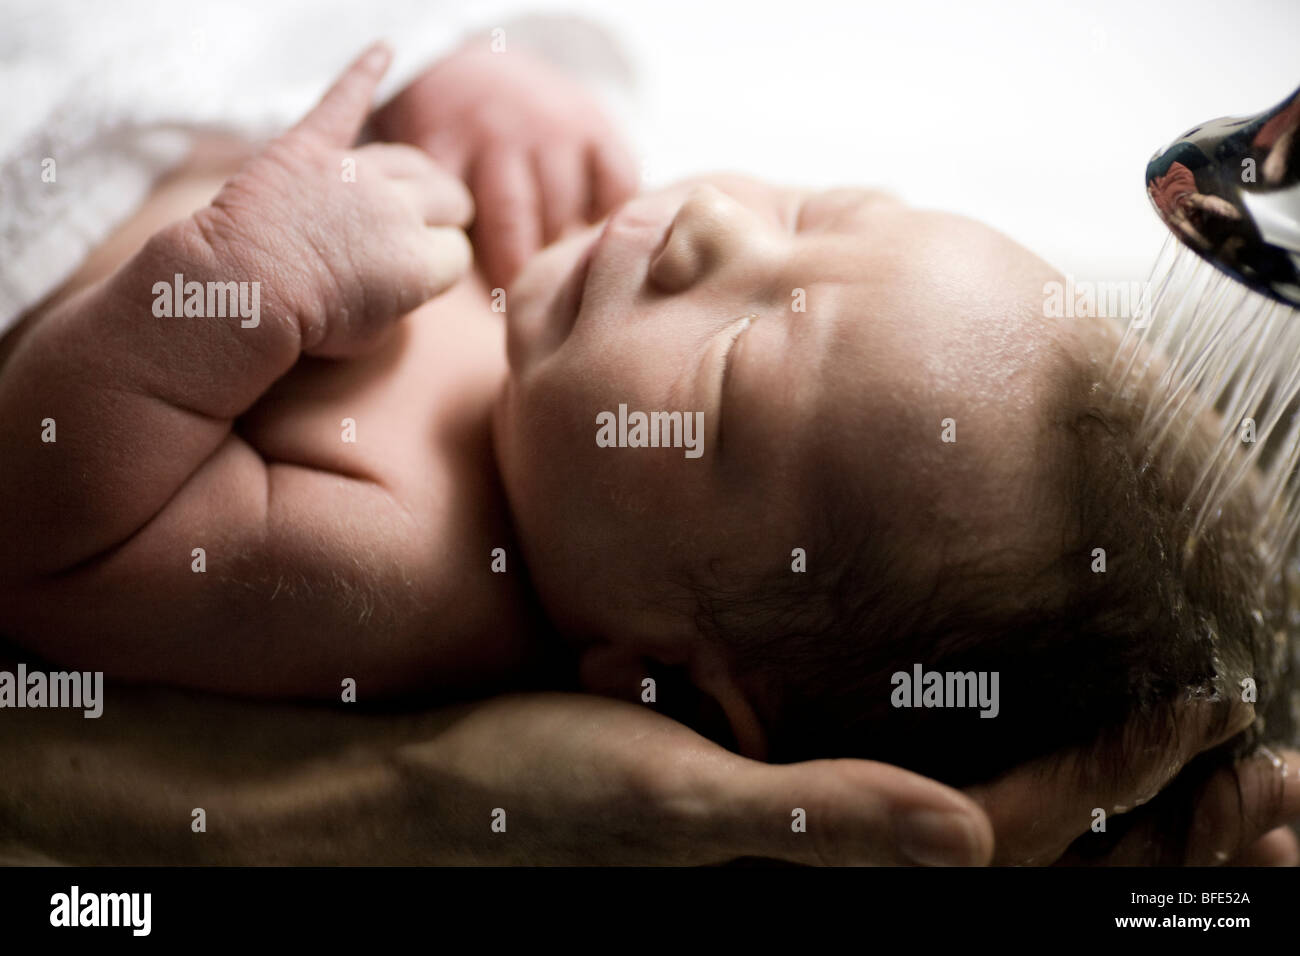 3 day old baby boy being washed for the first time in the sink at the hospital, Chateauguay, Quebec, Canada - Stock Image